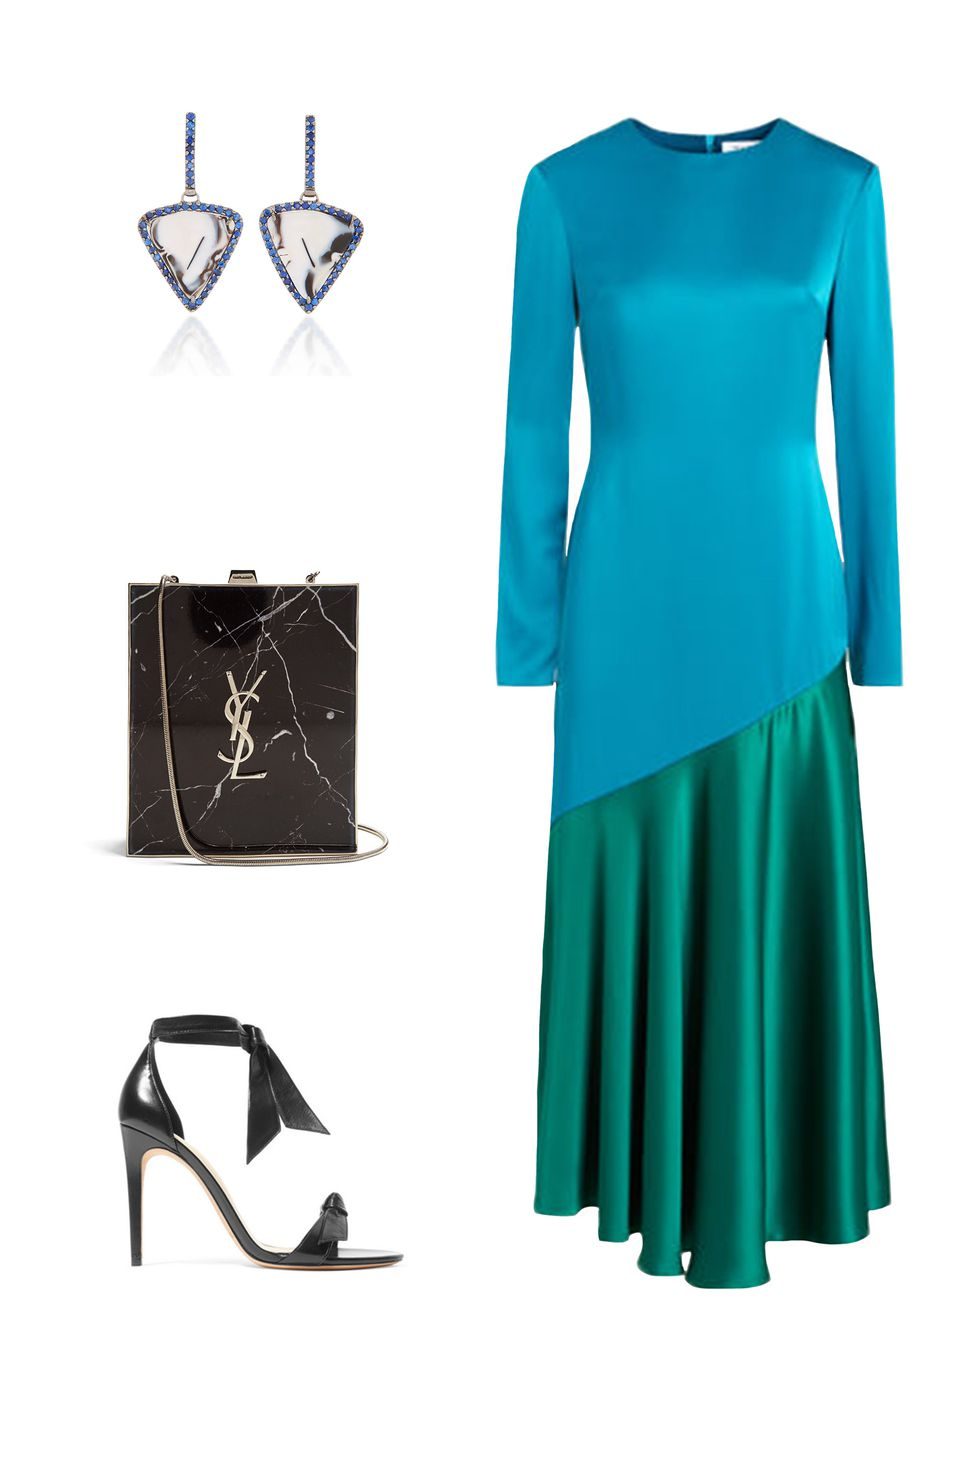 what-to-wear-for-a-fall-wedding-guest-outfit-autumn-gallery-blue-med-dress-midi-colorblock-black-bag-black-shoe-sandalh-earrings-dinner.jpg